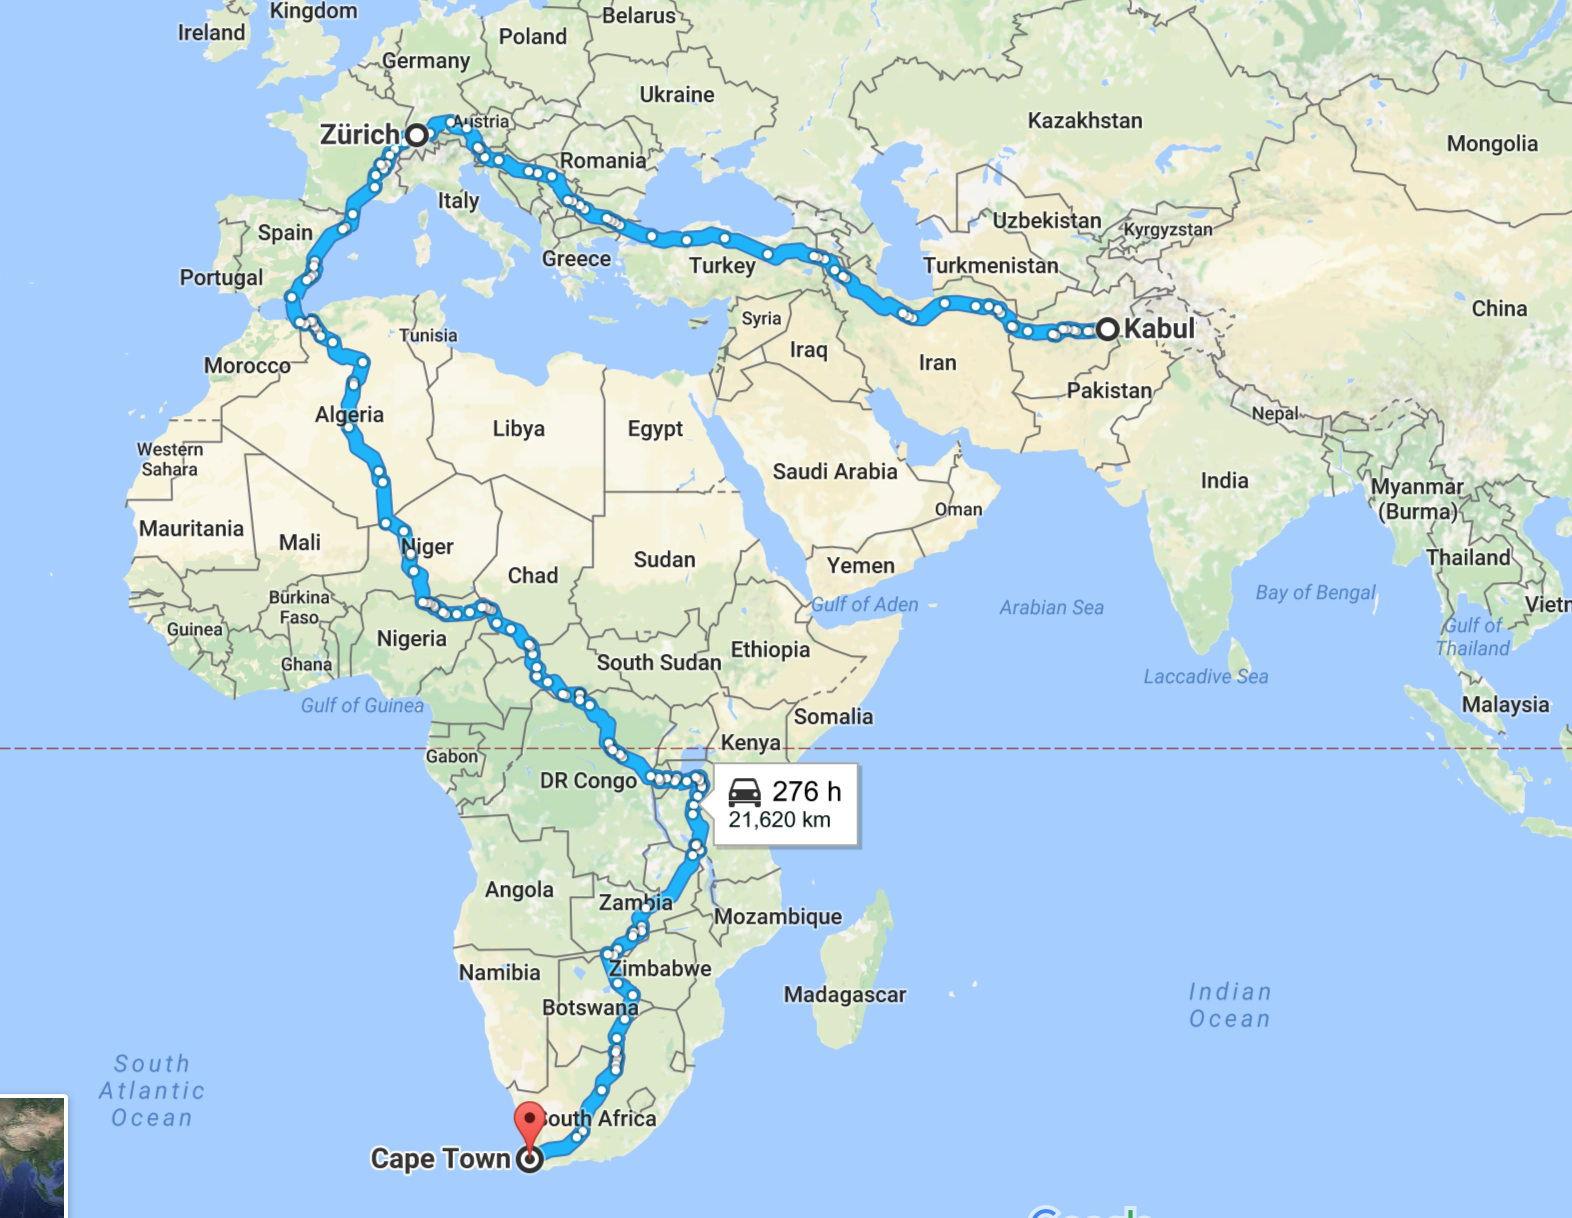 Part three – Kuala Lumpur to Kabul via Mongolia to Cape Town. Google Maps cannot find routes in Asia, unfortunately.